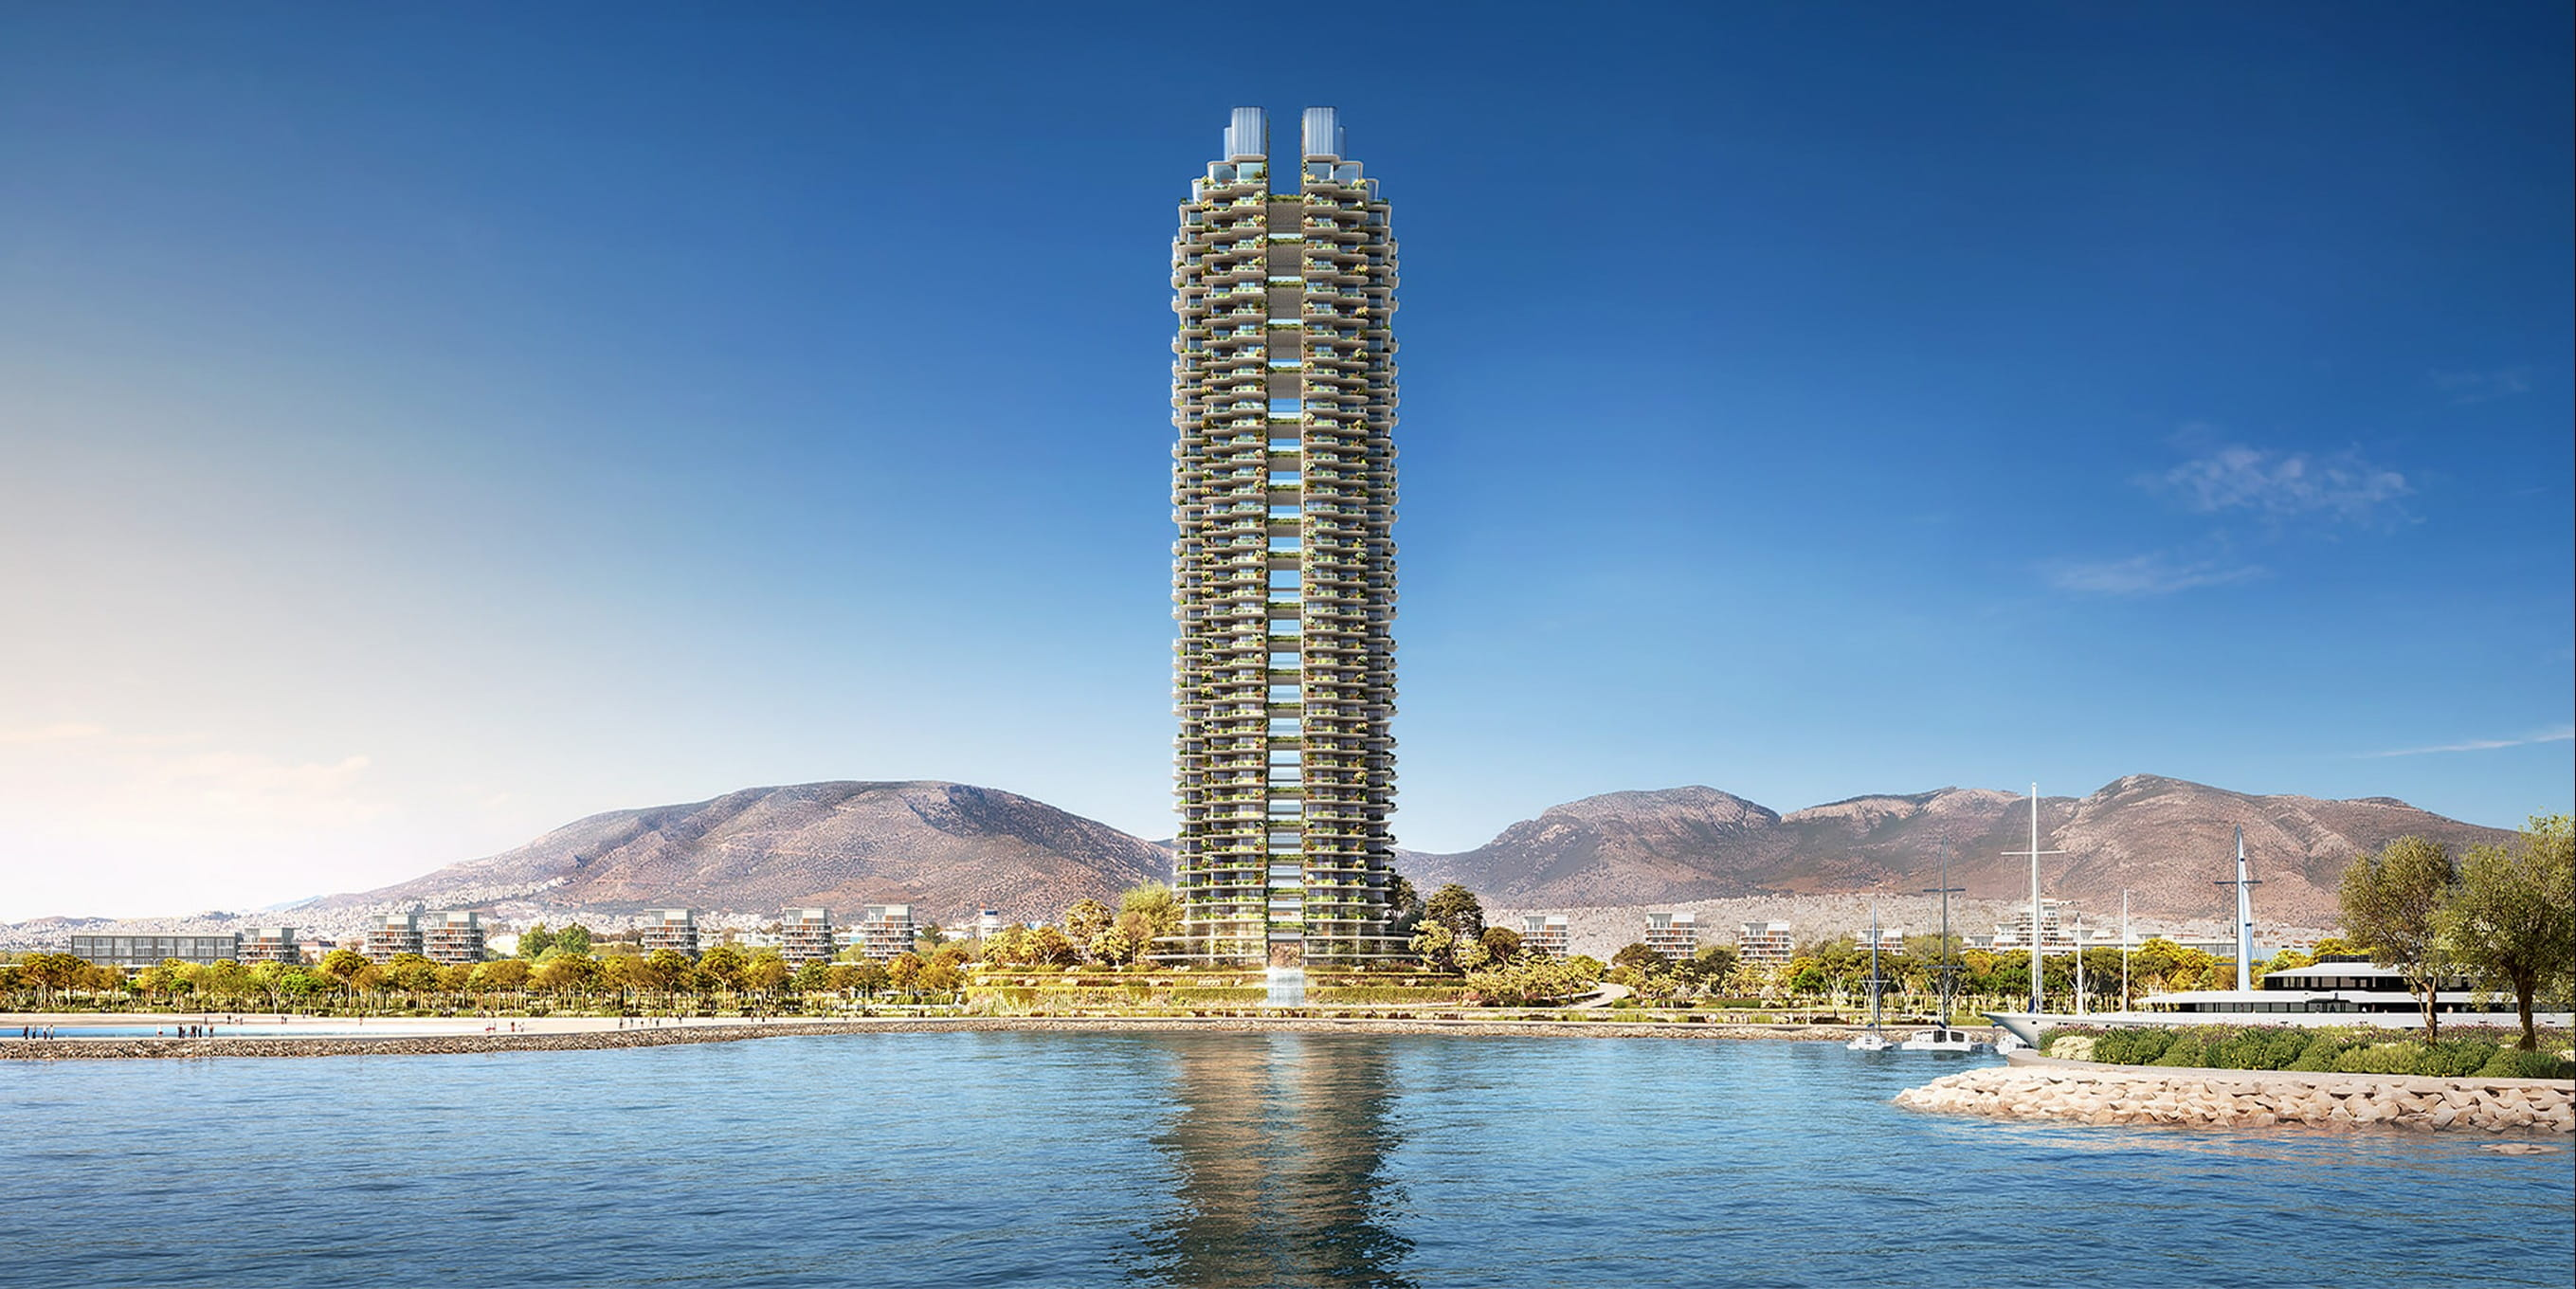 Foster + Partners reveals design for 200-metre-high Marina Tower, the tallest building in Greece